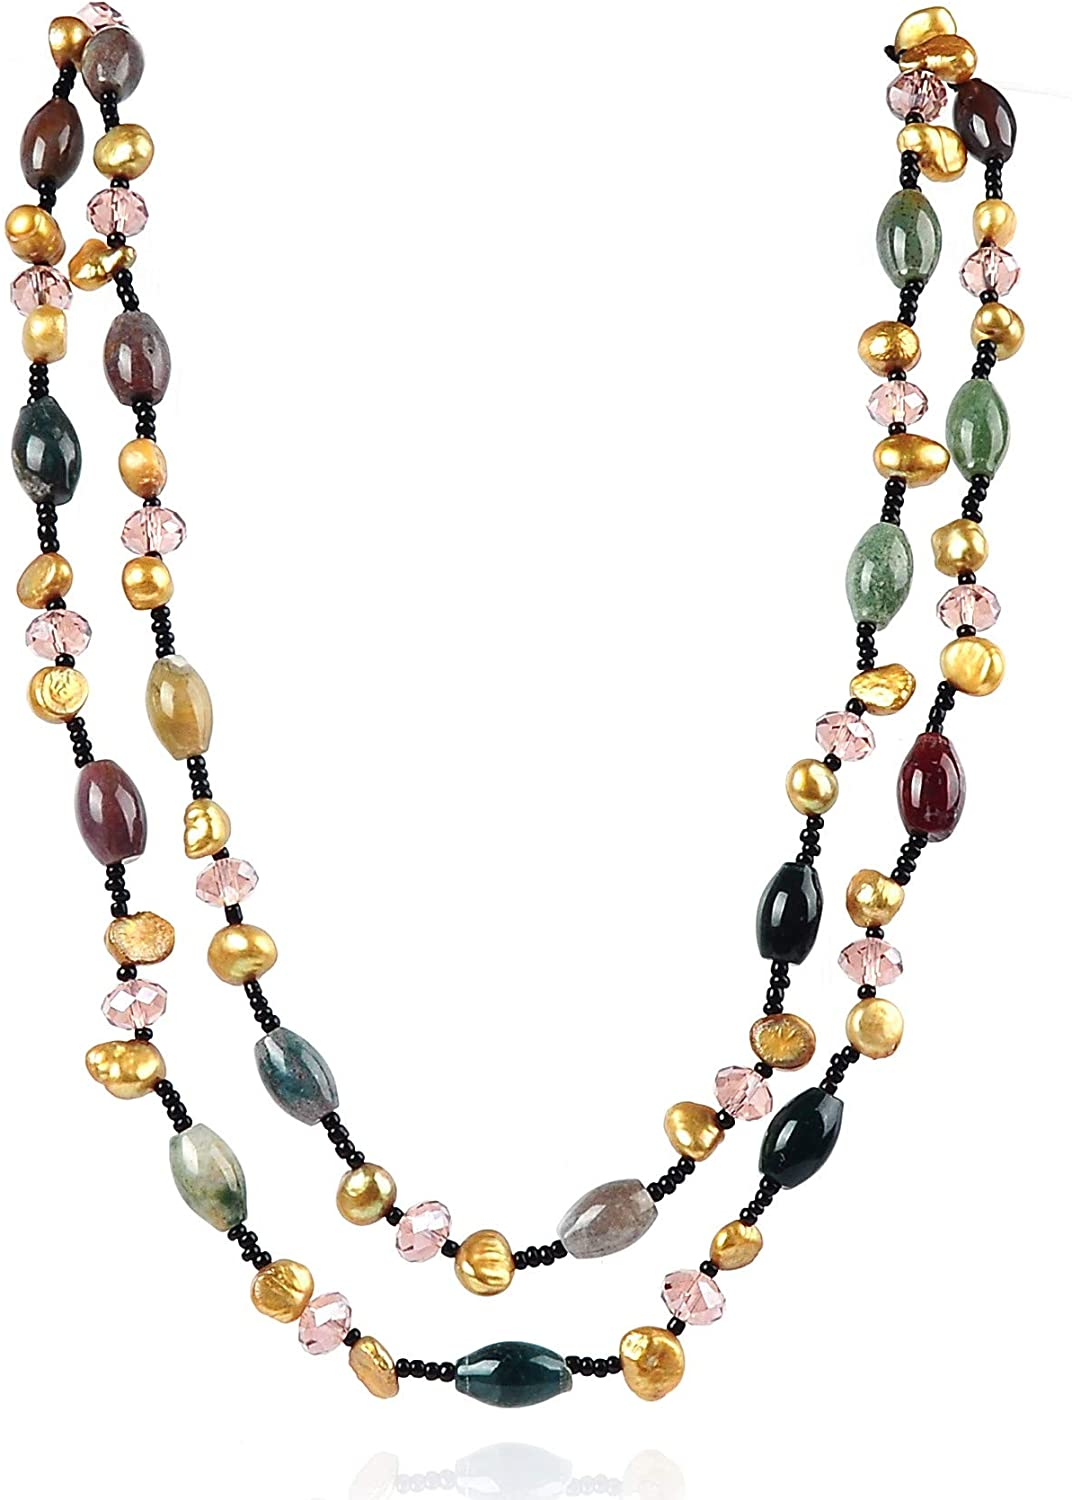 Two Strand Fashion Crystal Genuine Freshwater Cultured Pearl Necklaces SKU#: nk178